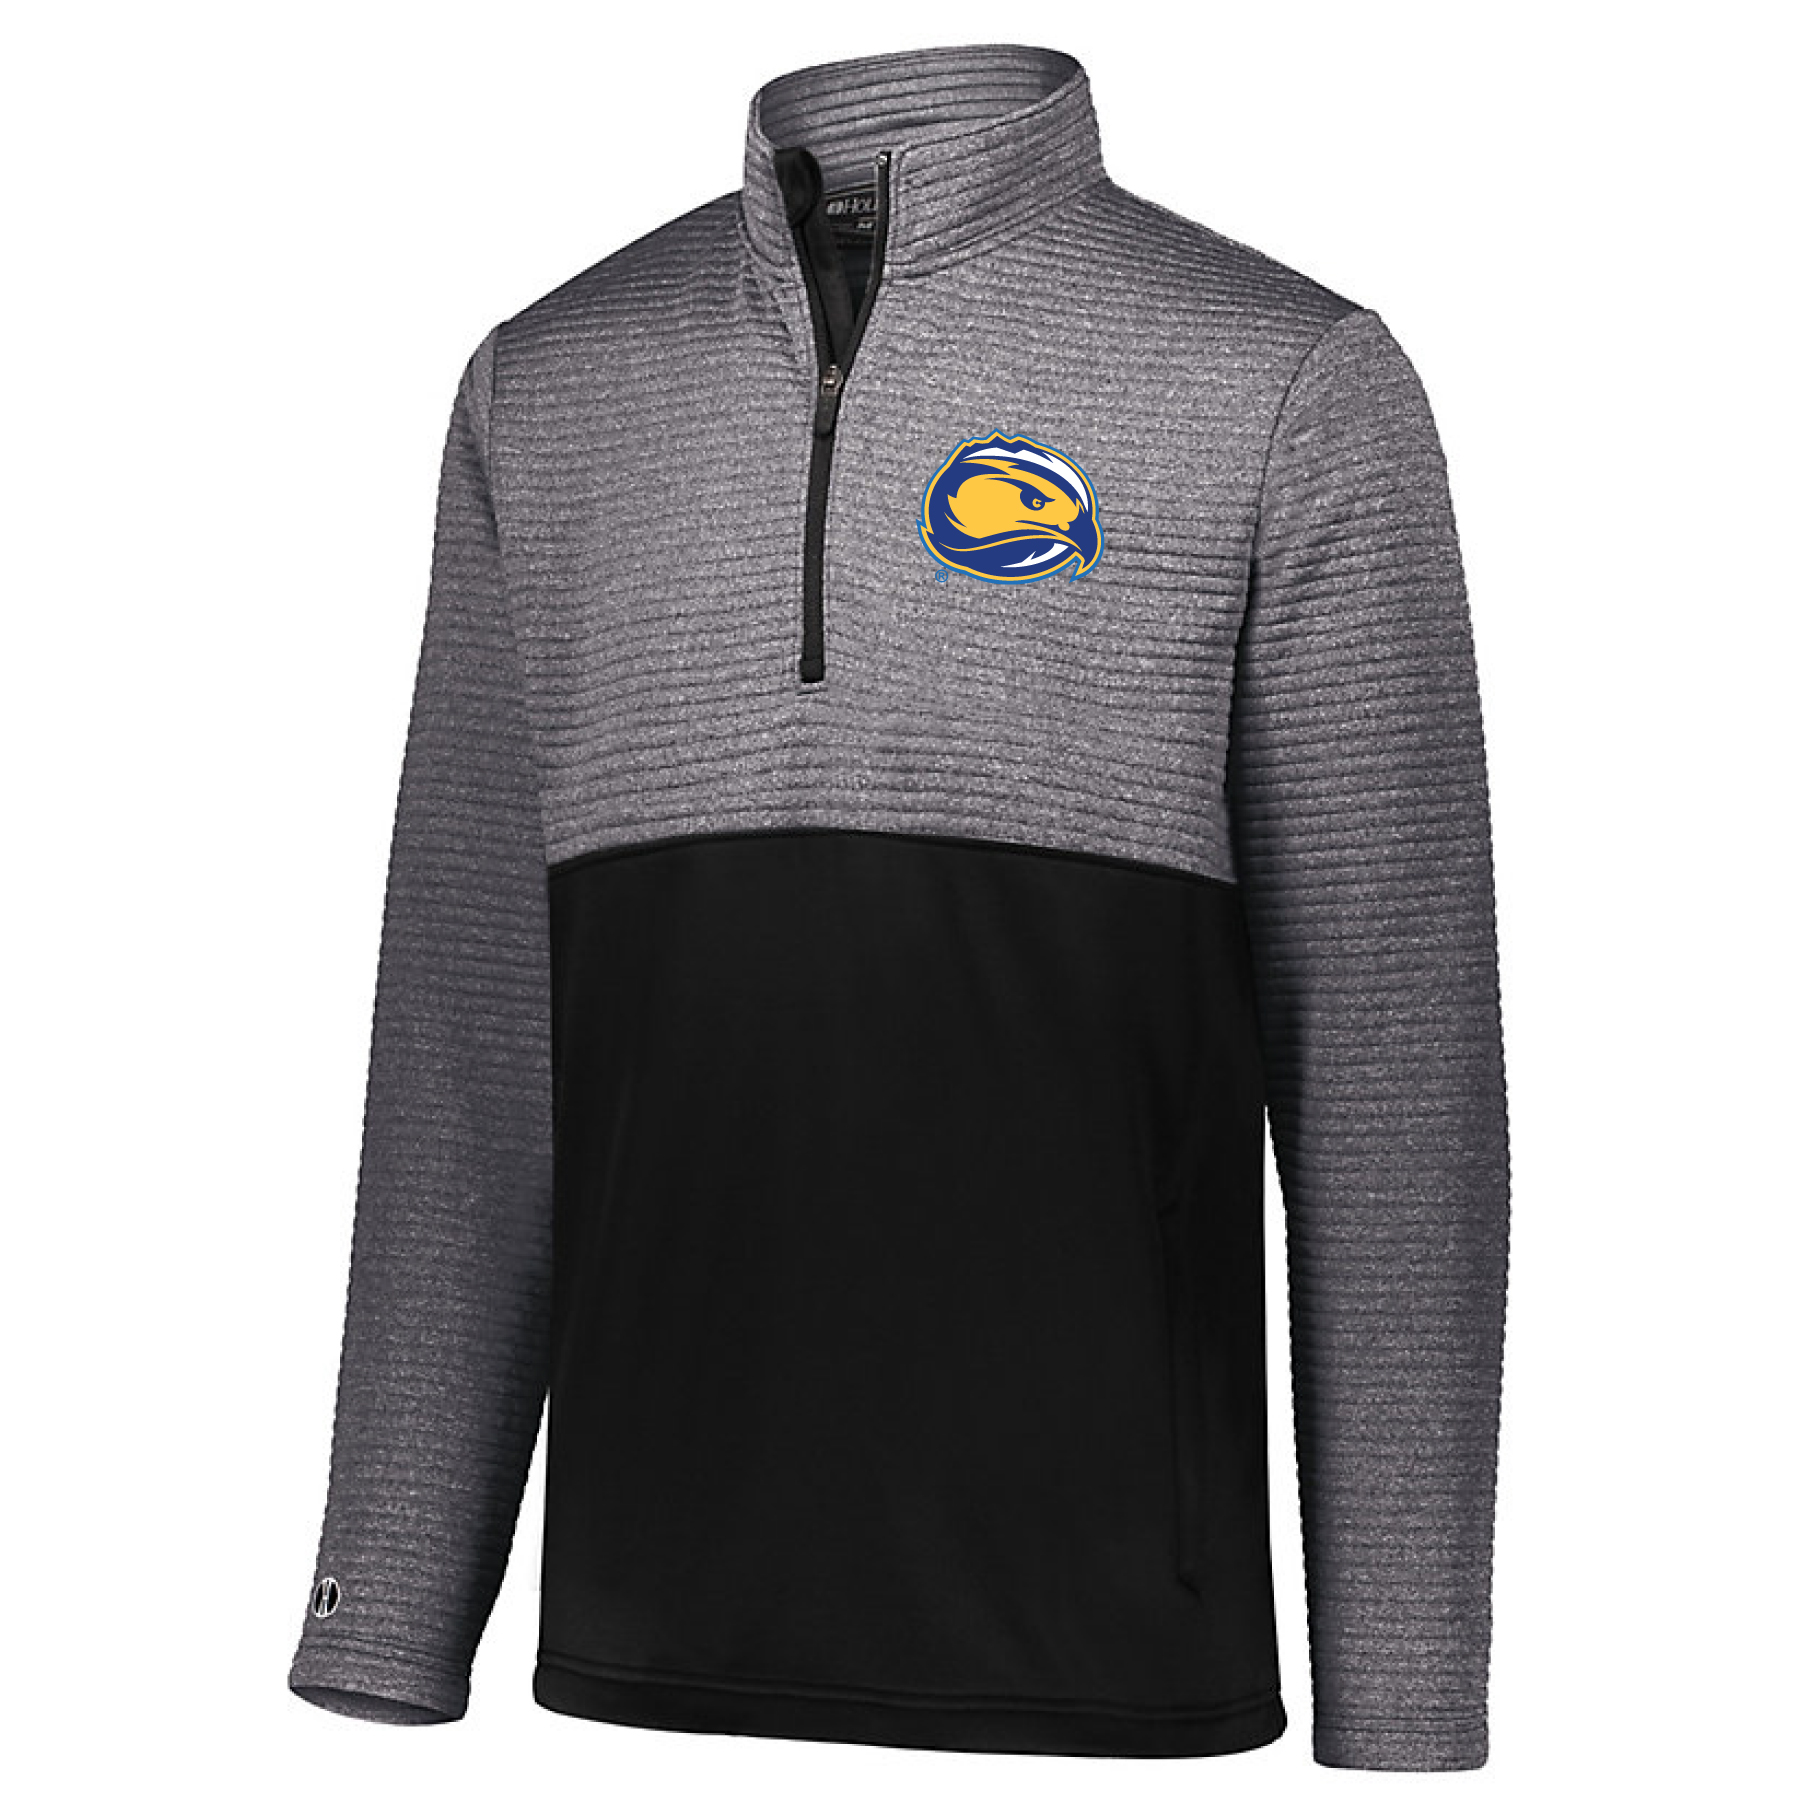 FLC Mascot 3D Regulate 1/4 Zip